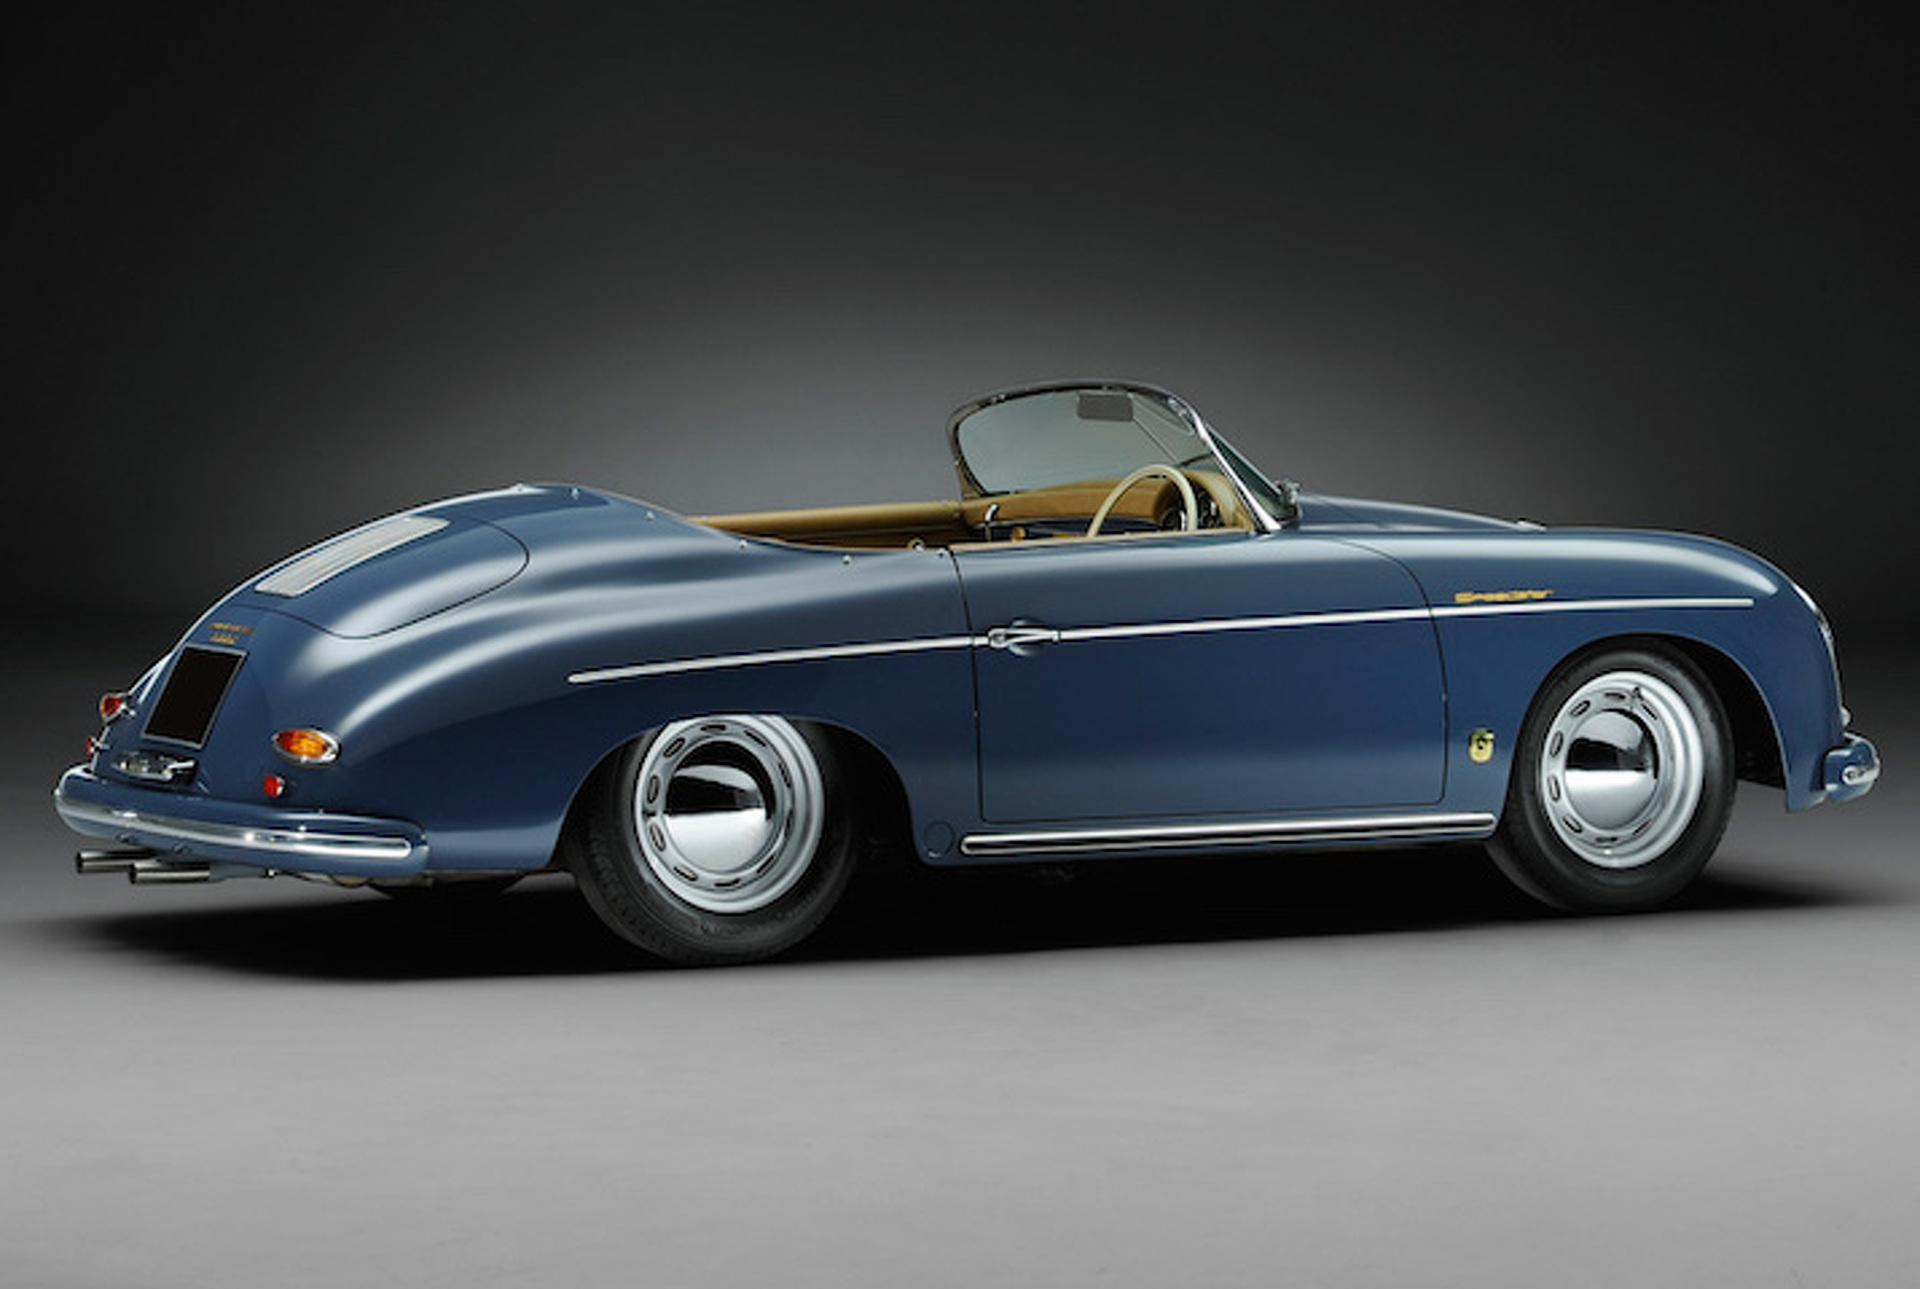 This 1957 Porsche 356 Speedster Is A Pristine Example Of